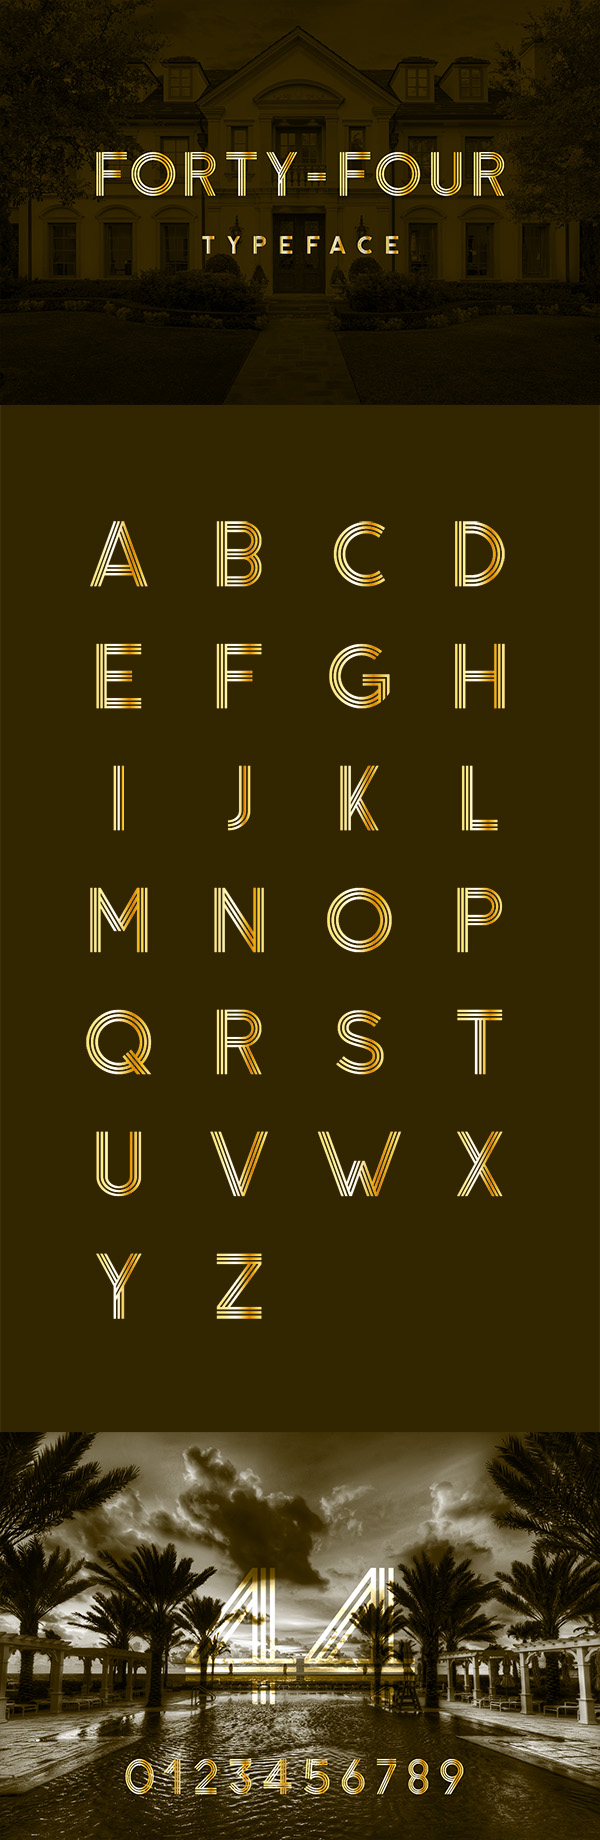 23 Forty-Four Free Typeface